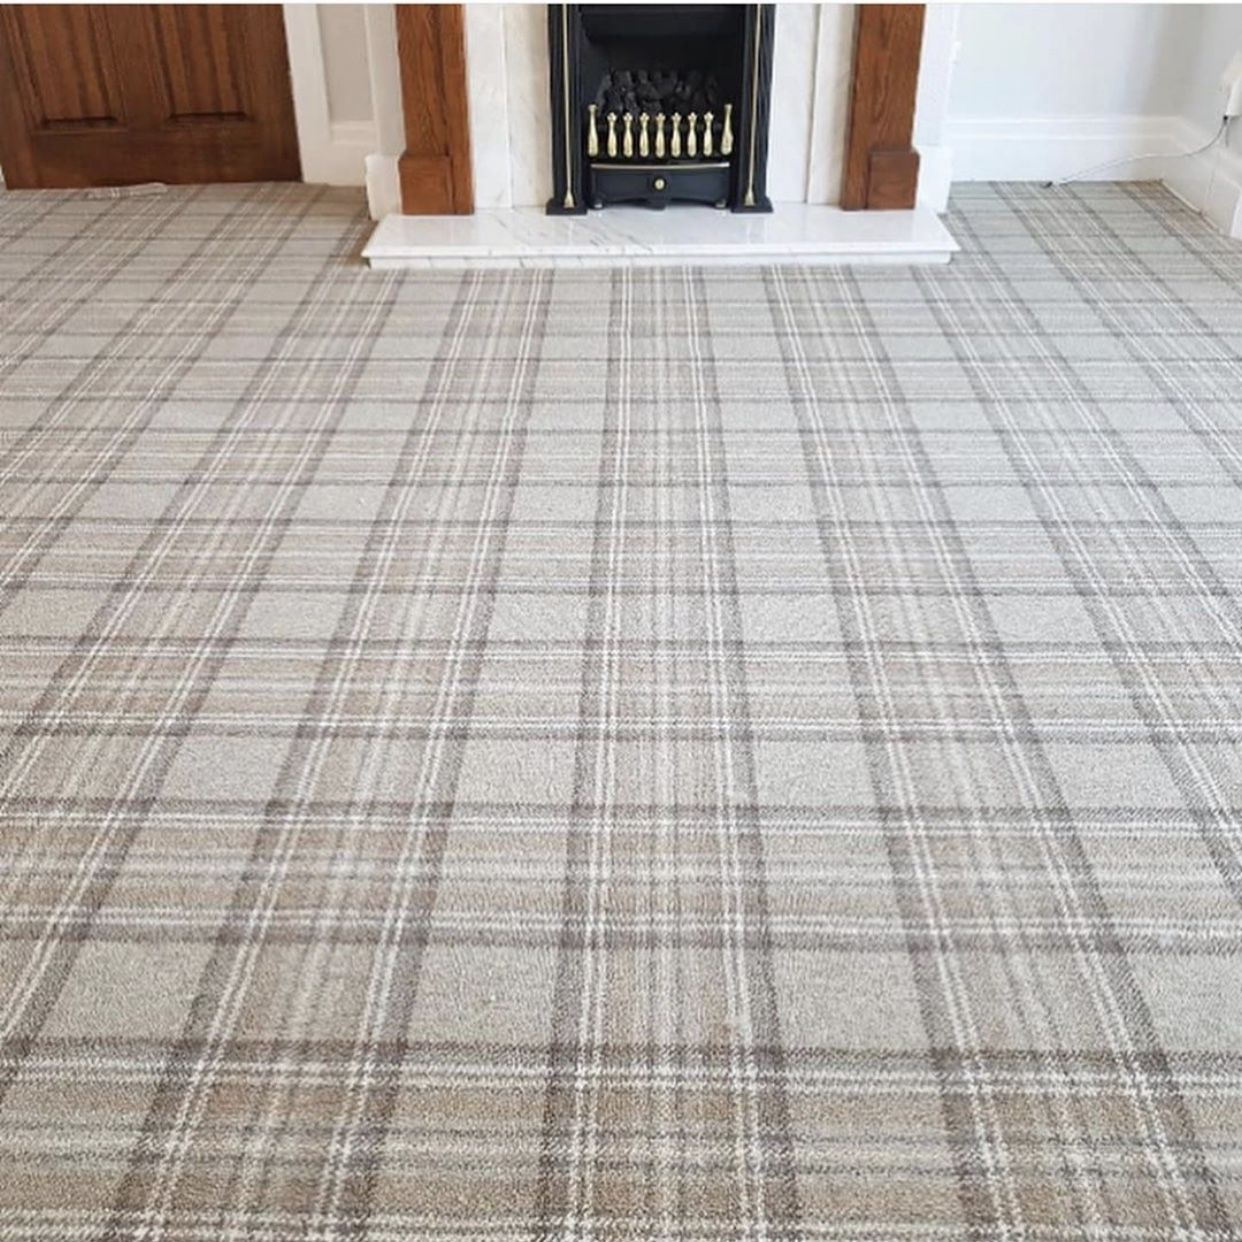 Tartan Carpet Axminster Living Room Decor Living Room Carpet Carpet Stairs Tartan Carpet